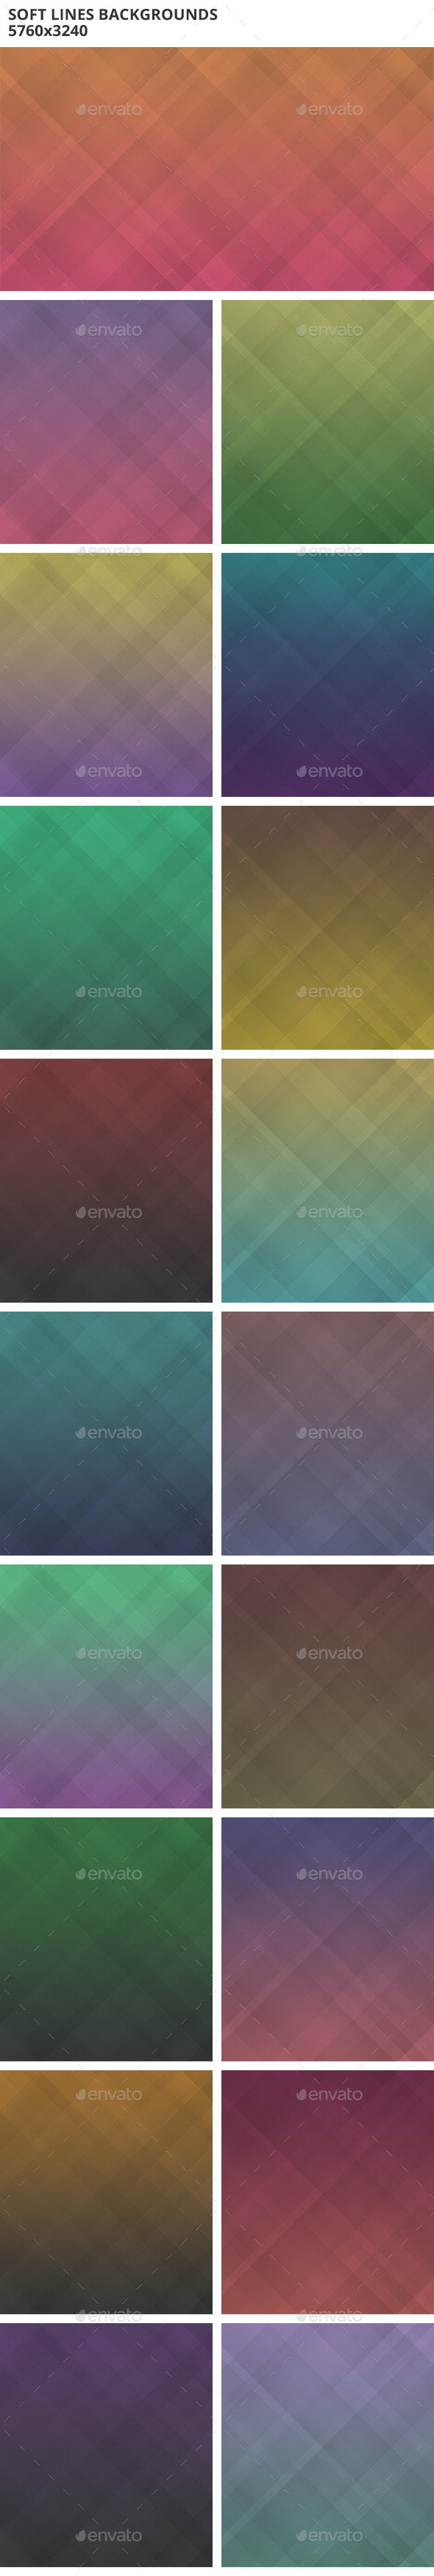 Soft Lines Backgrounds - Abstract Backgrounds